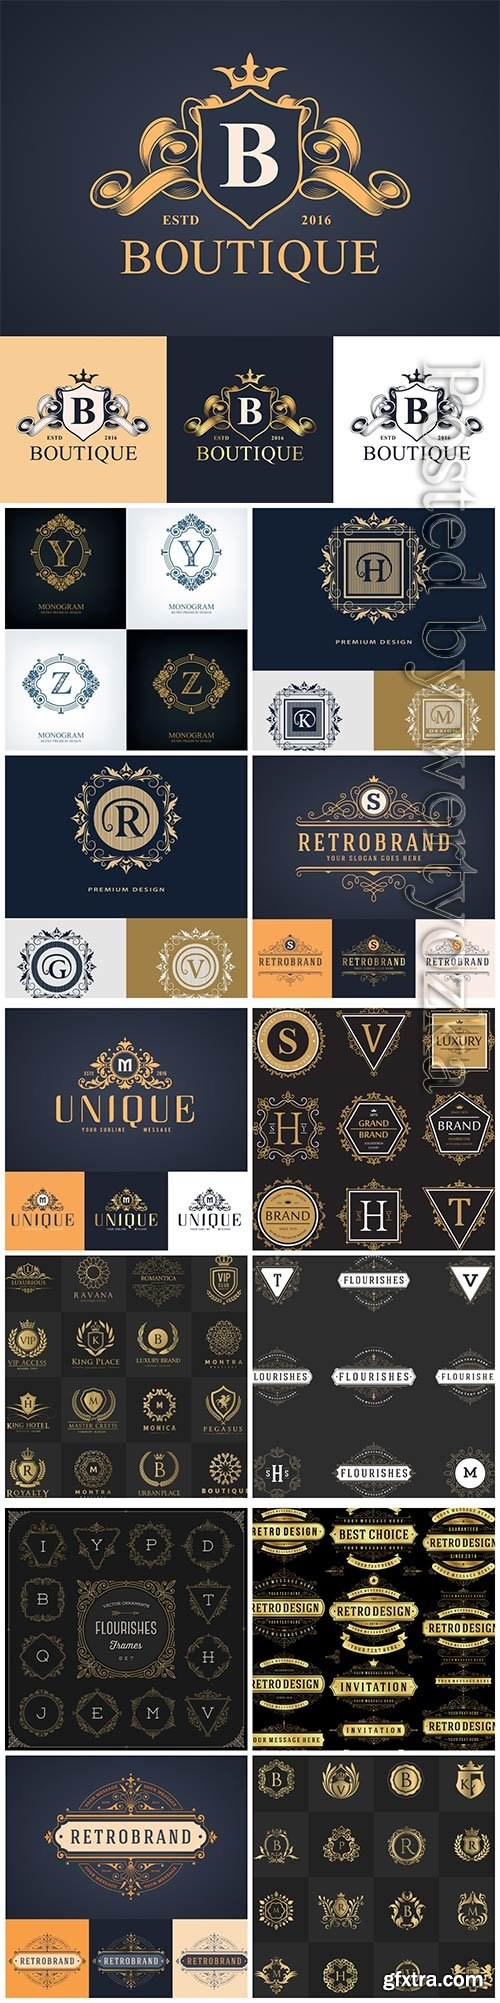 Logos, badges and design elements in vector